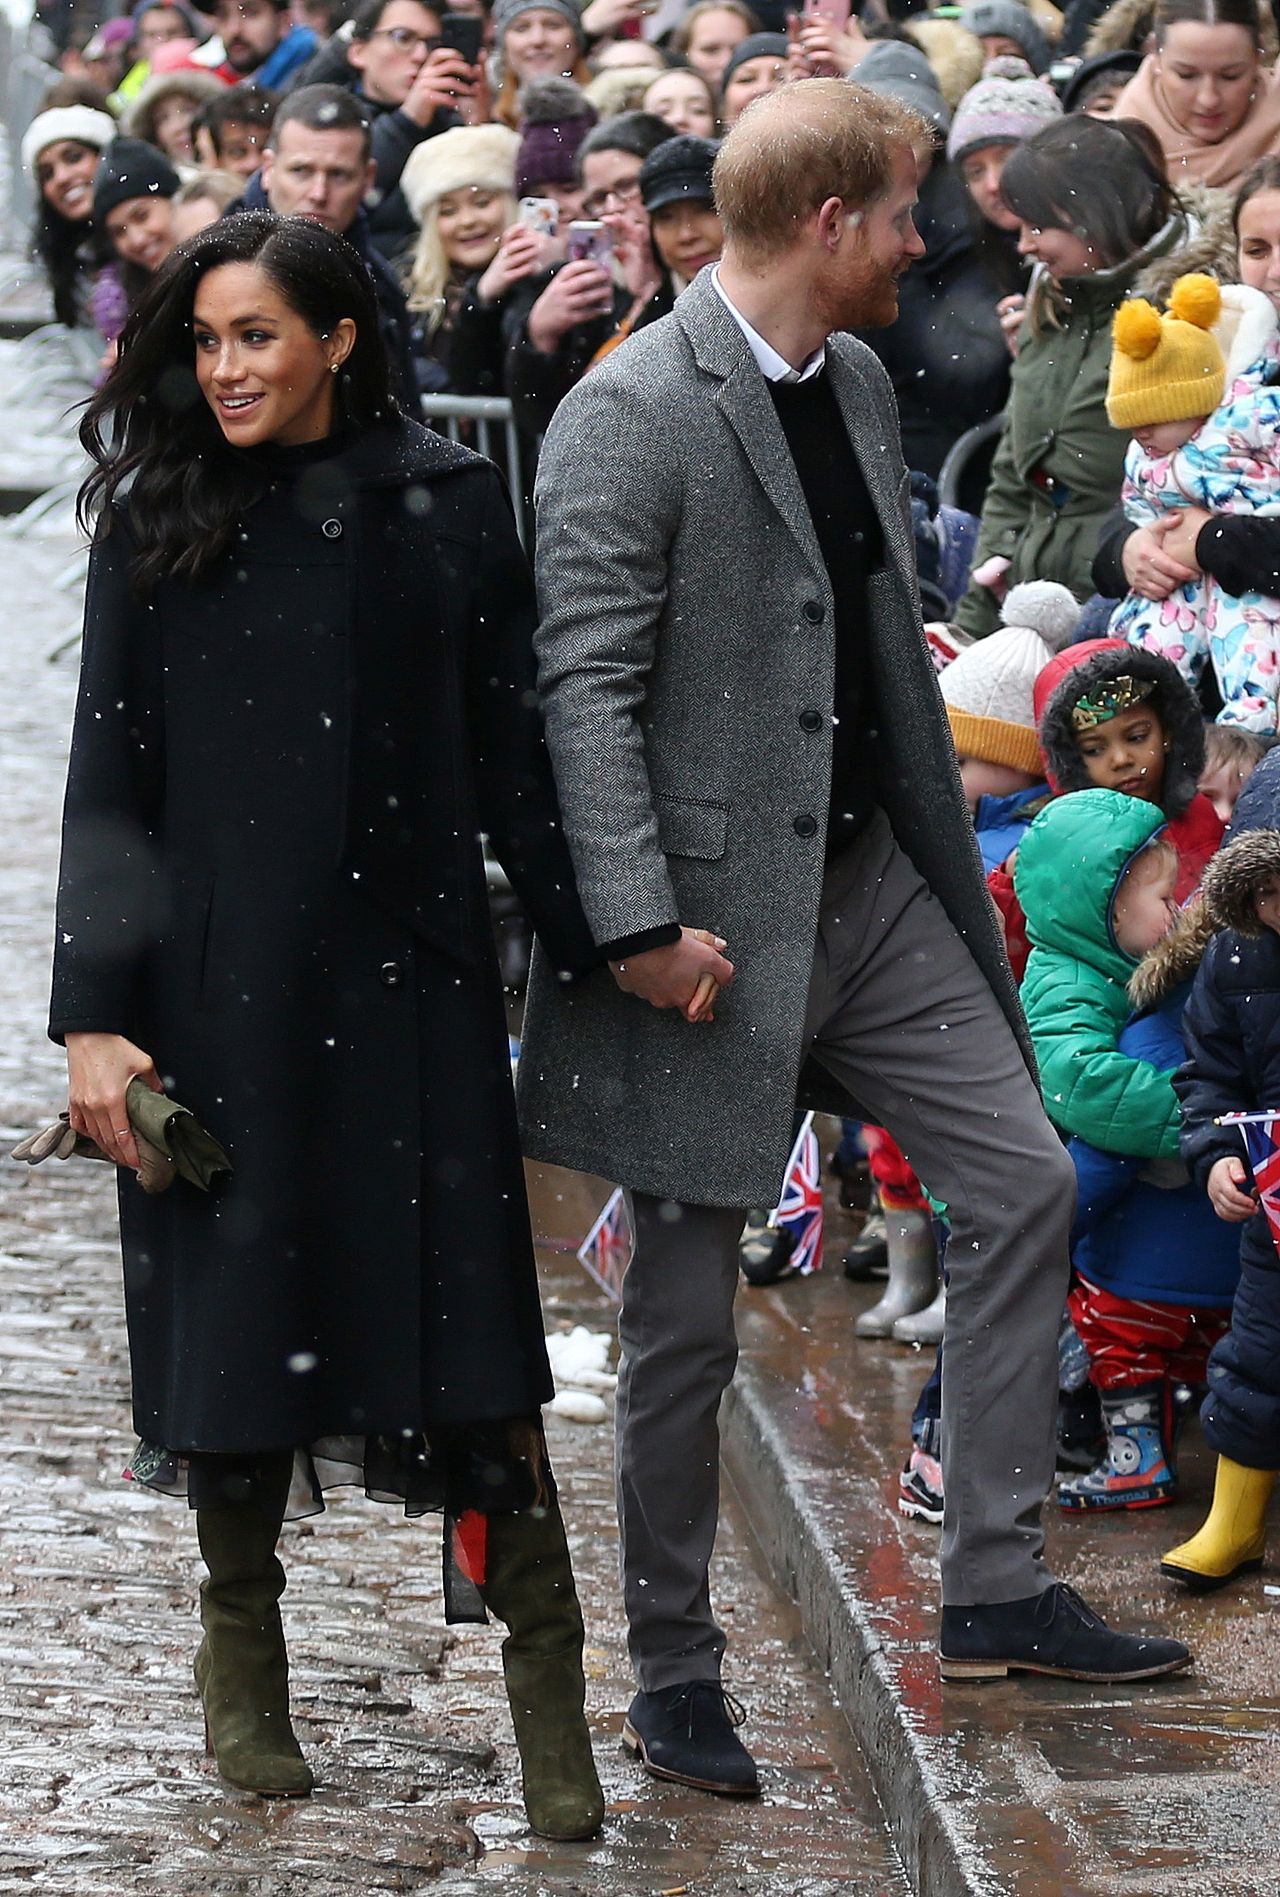 Britain's Prince Harry, Duke of Sussex and Meghan, Duchess of Sussex visit Bristol